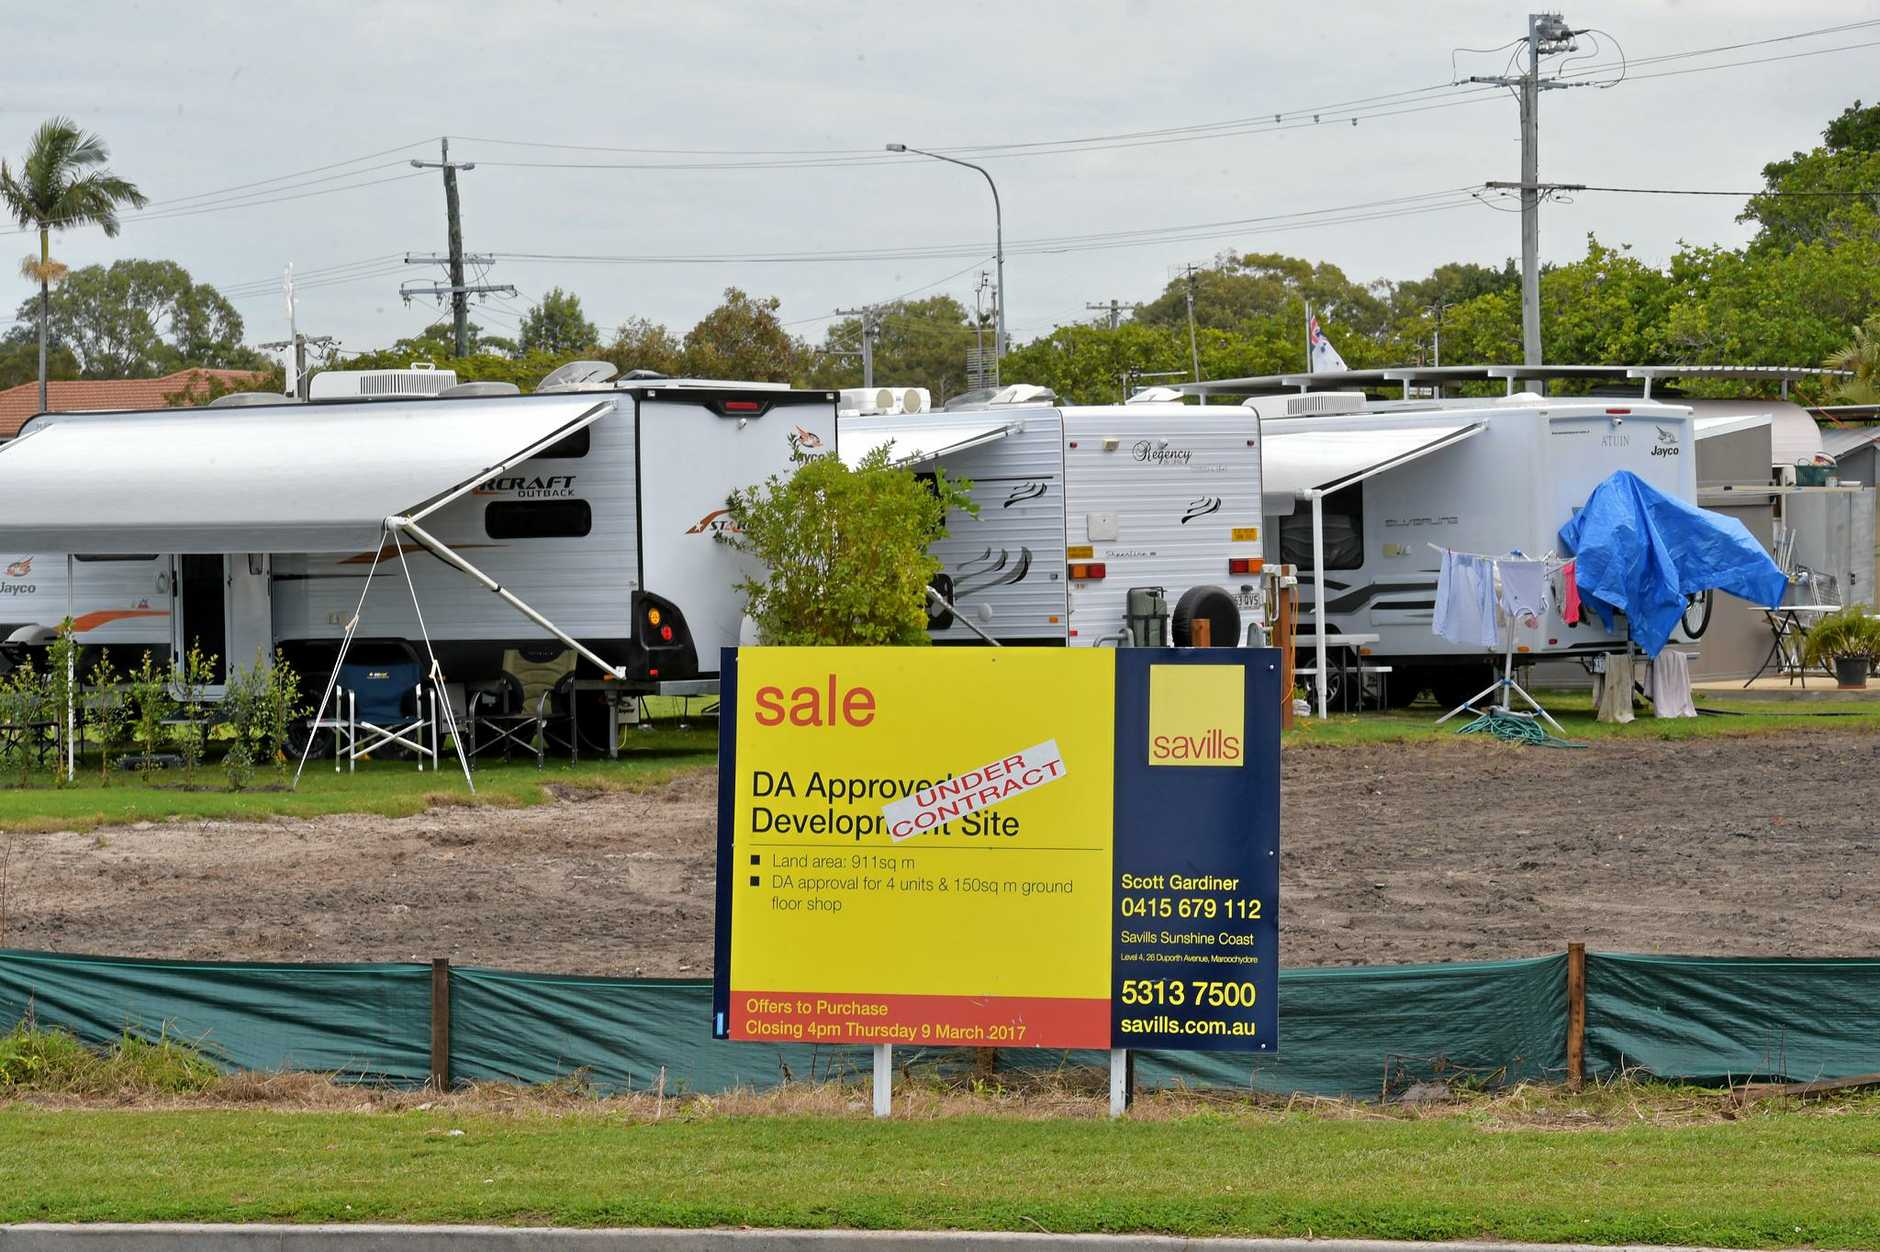 The Military Caravan park is for sale.